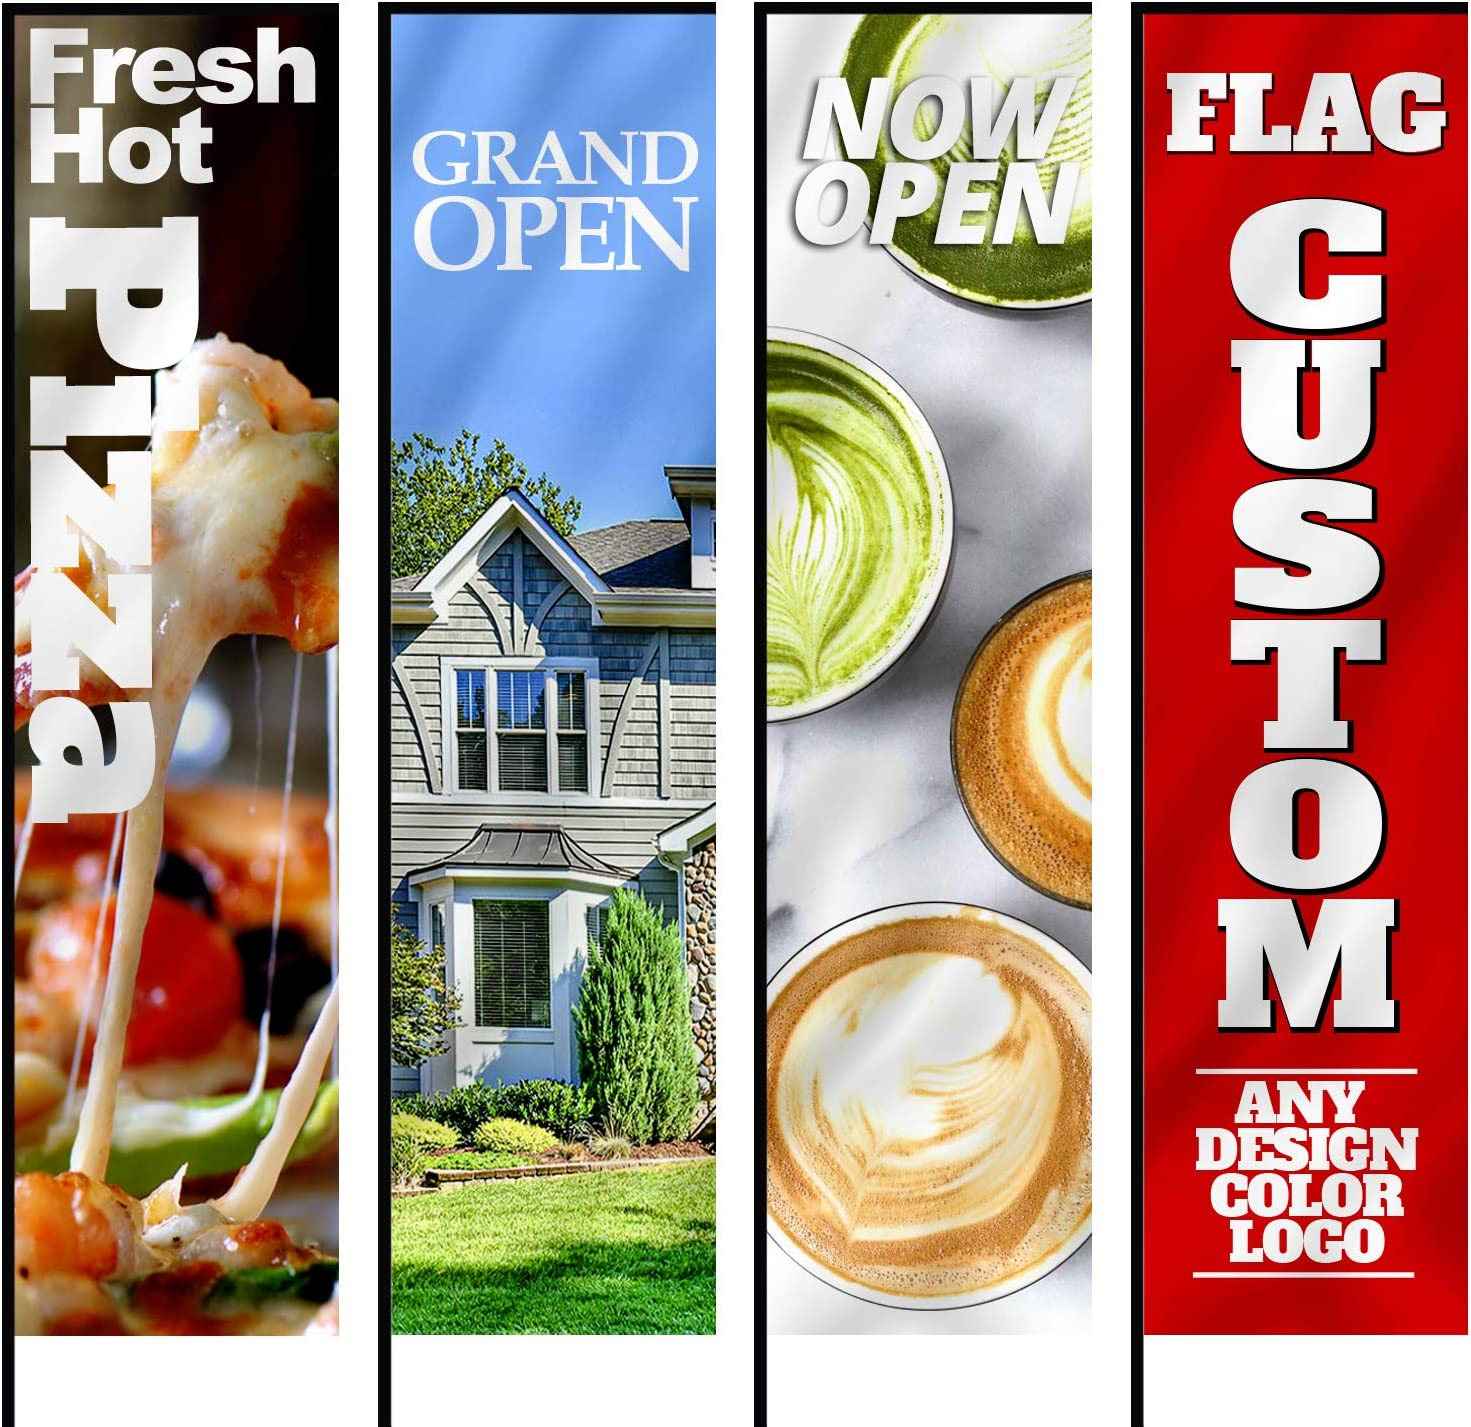 Anley Custom Rectangle Feather Flag 2 X 6 Ft Double Sided - Print Your Own Logo/Design/Words - Indoor & Outdoor Commercial Advertising Banners Flags (Flag ONLY)